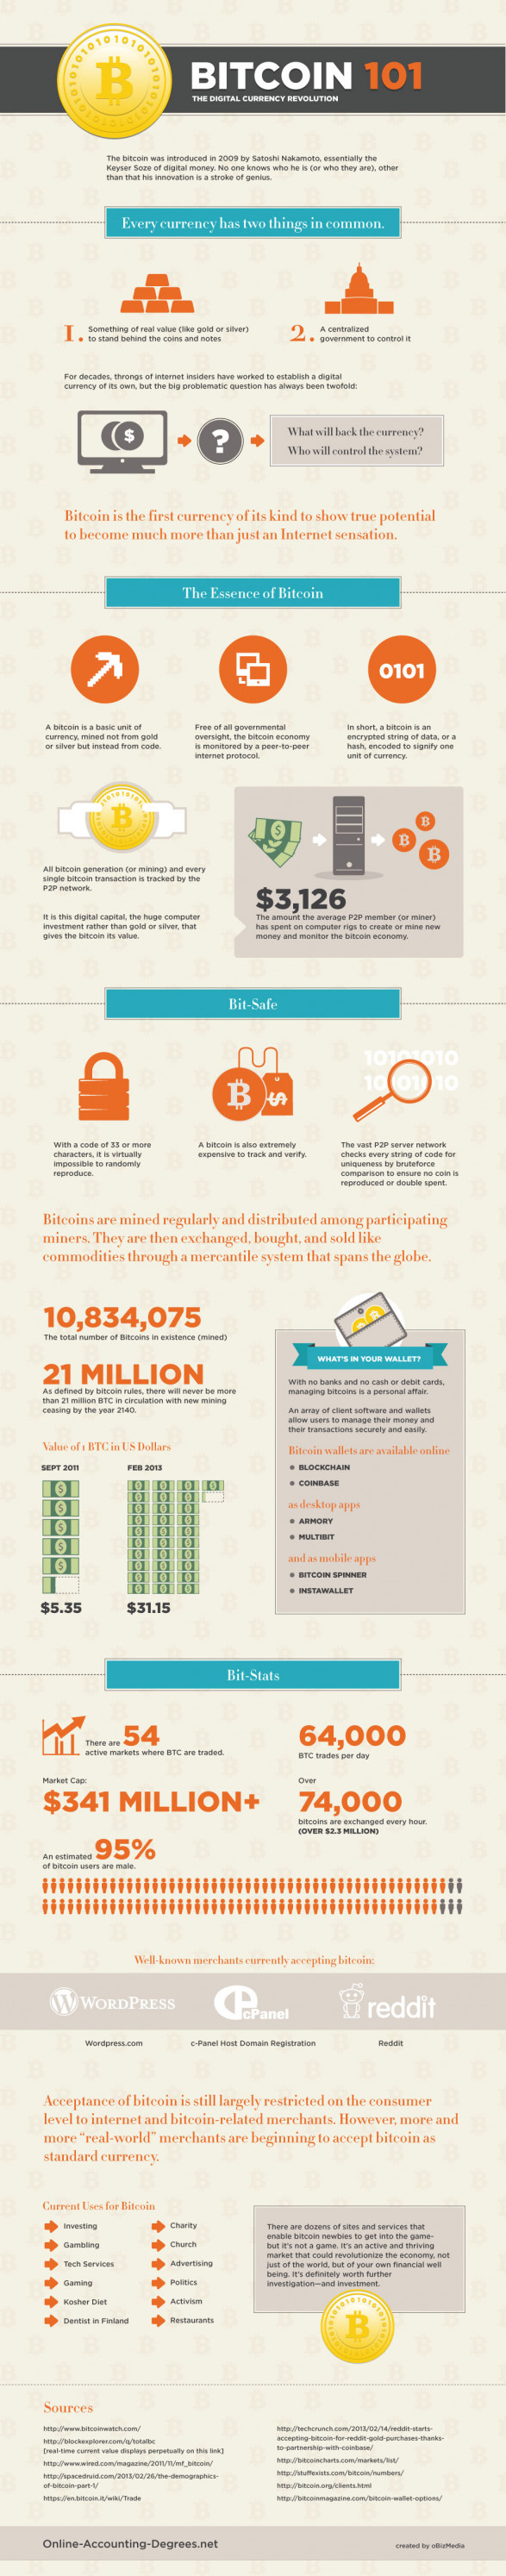 Bitcoin 101: The Digital Currency Revolution